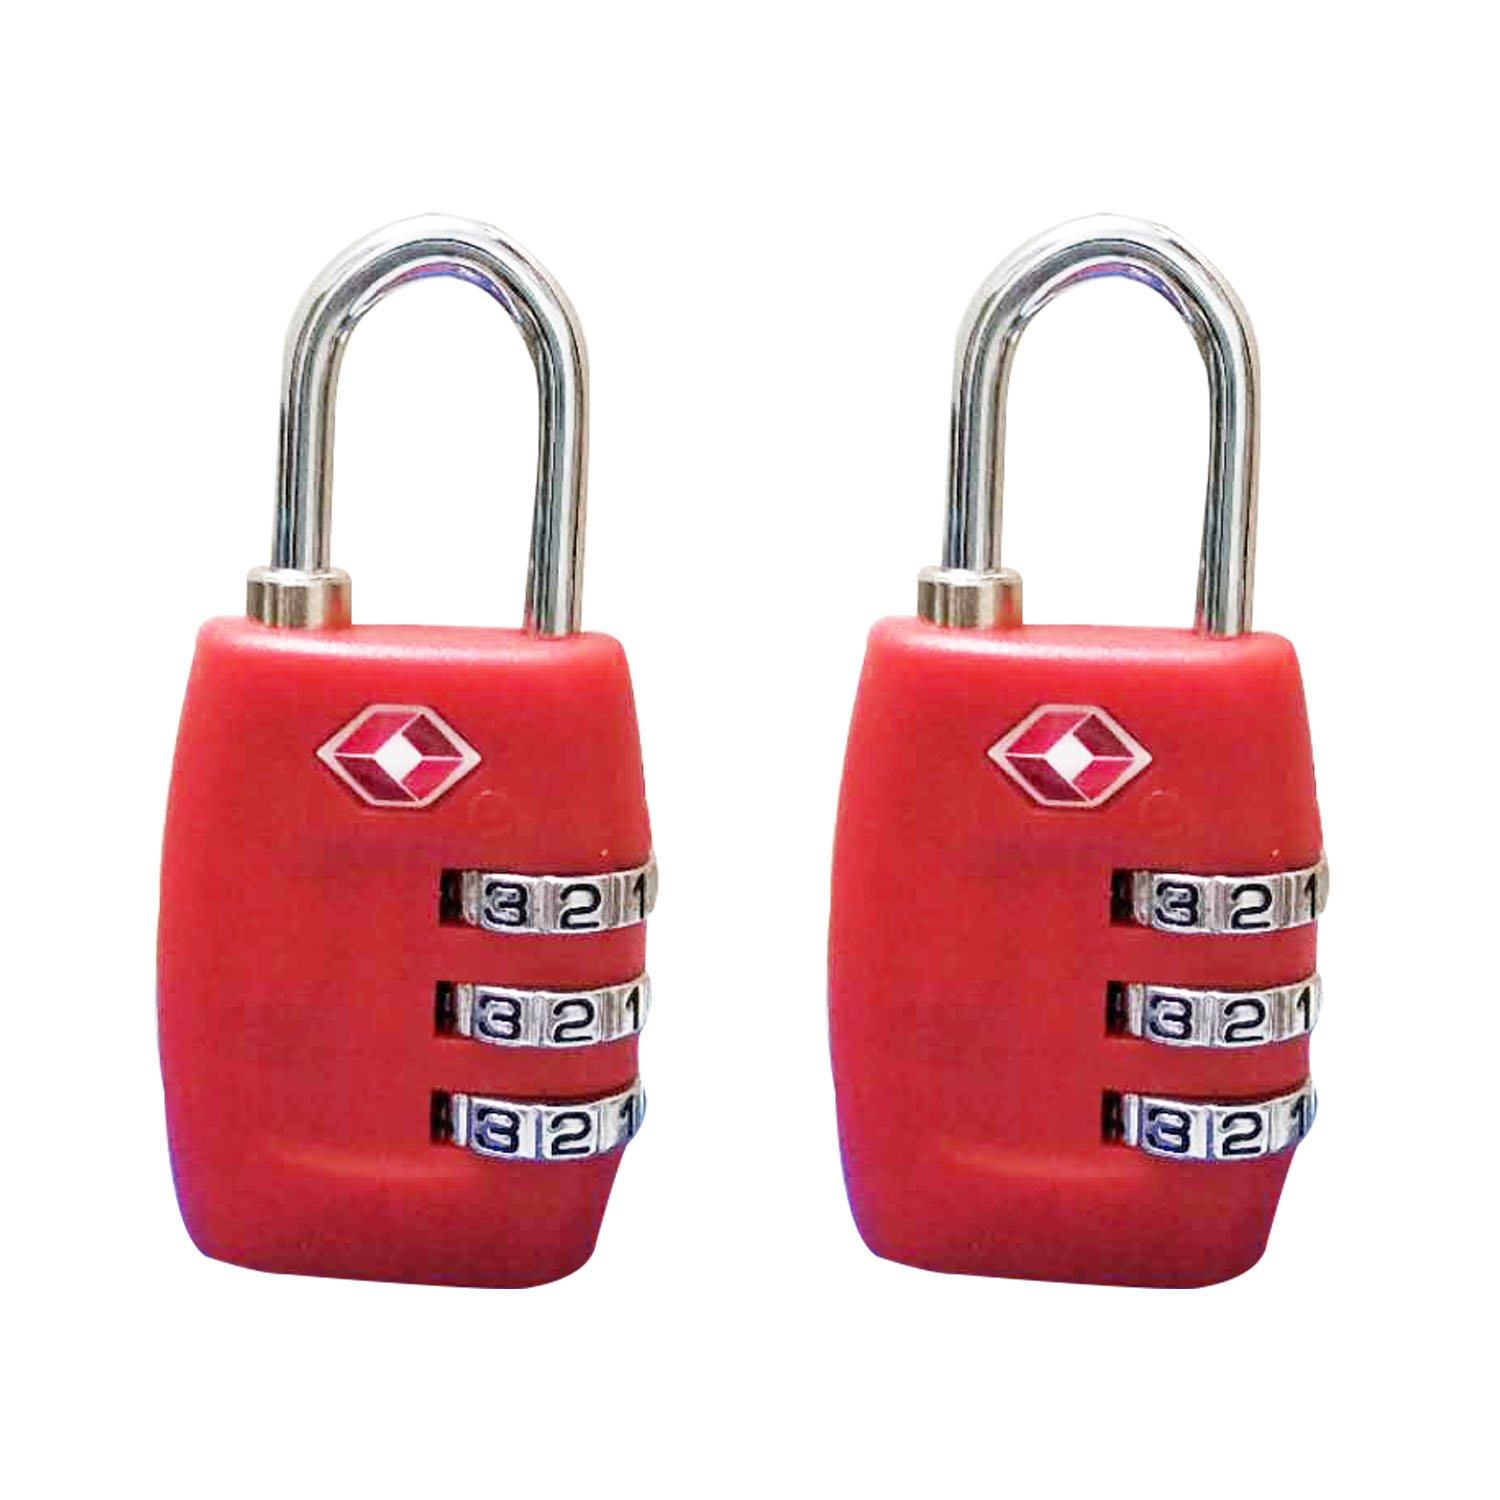 ANSATSY TSA Luggage Locks - 3 Digit Combination Steel Padlocks – TSA Approved Travel Lock for Suitcases & Baggage, Heavy Duty Luggage Lock for Travel Safety and Security (2 Pack) (Red)